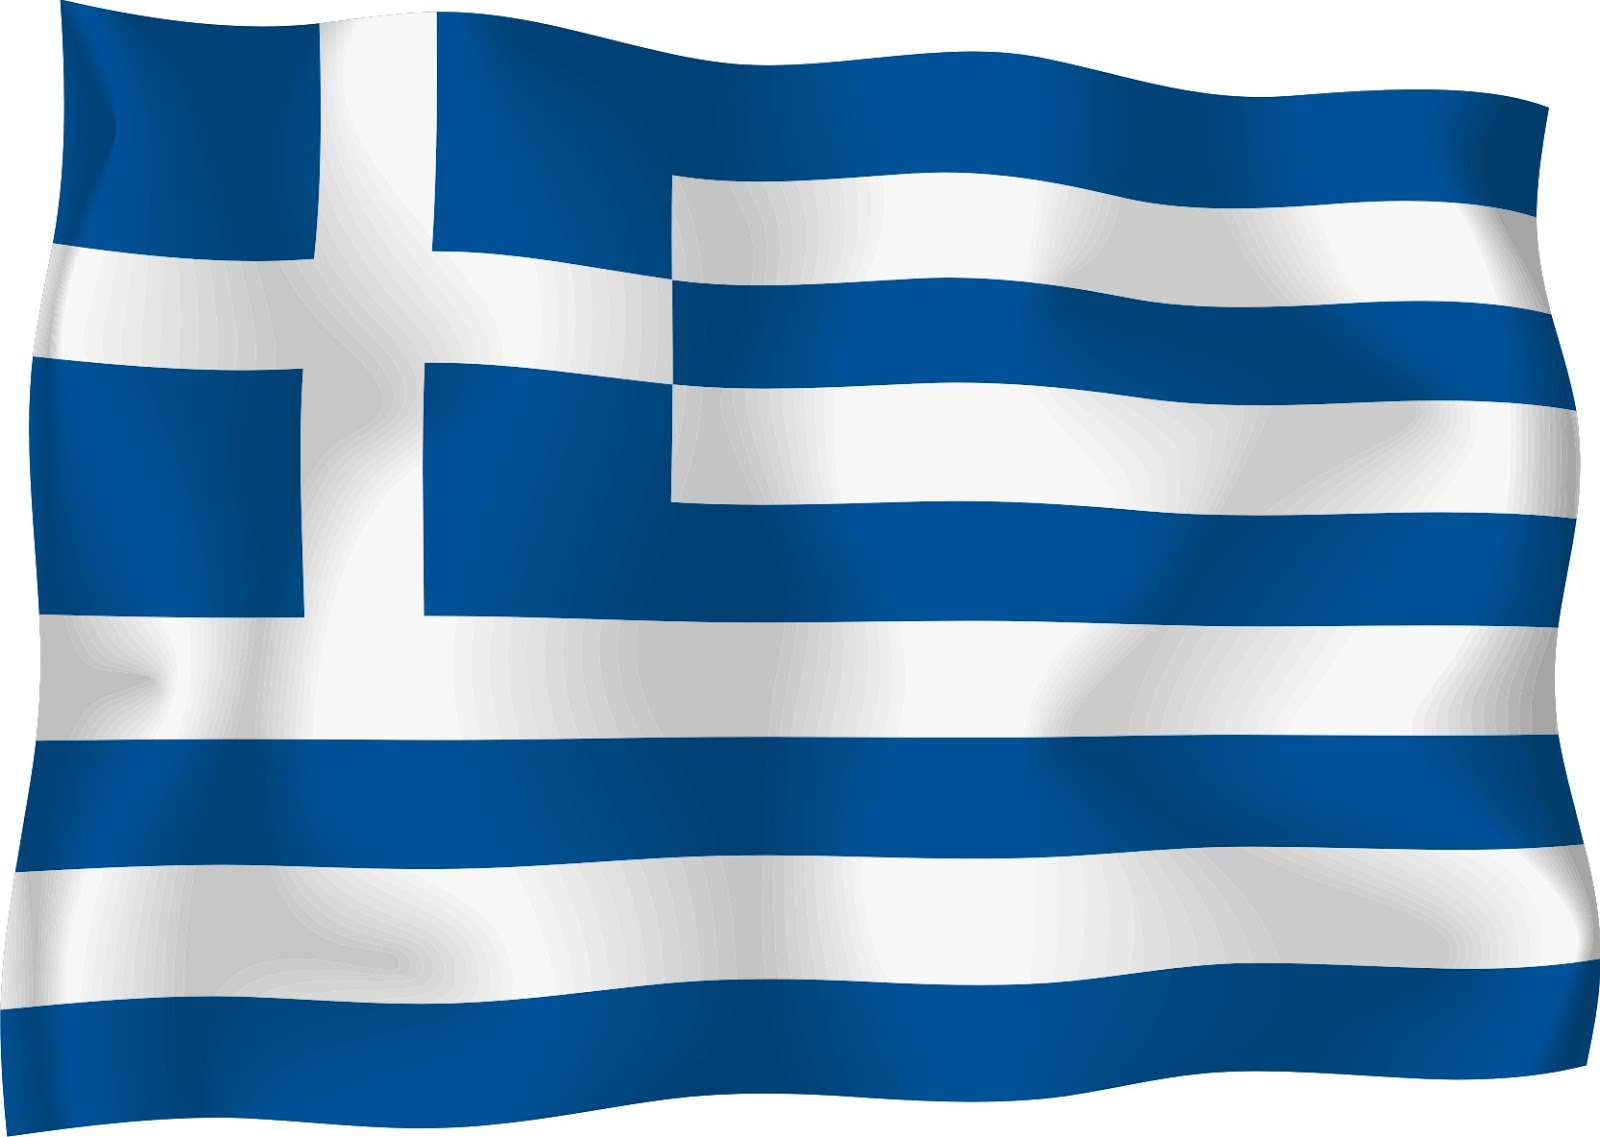 Greece Flag Meaning and History